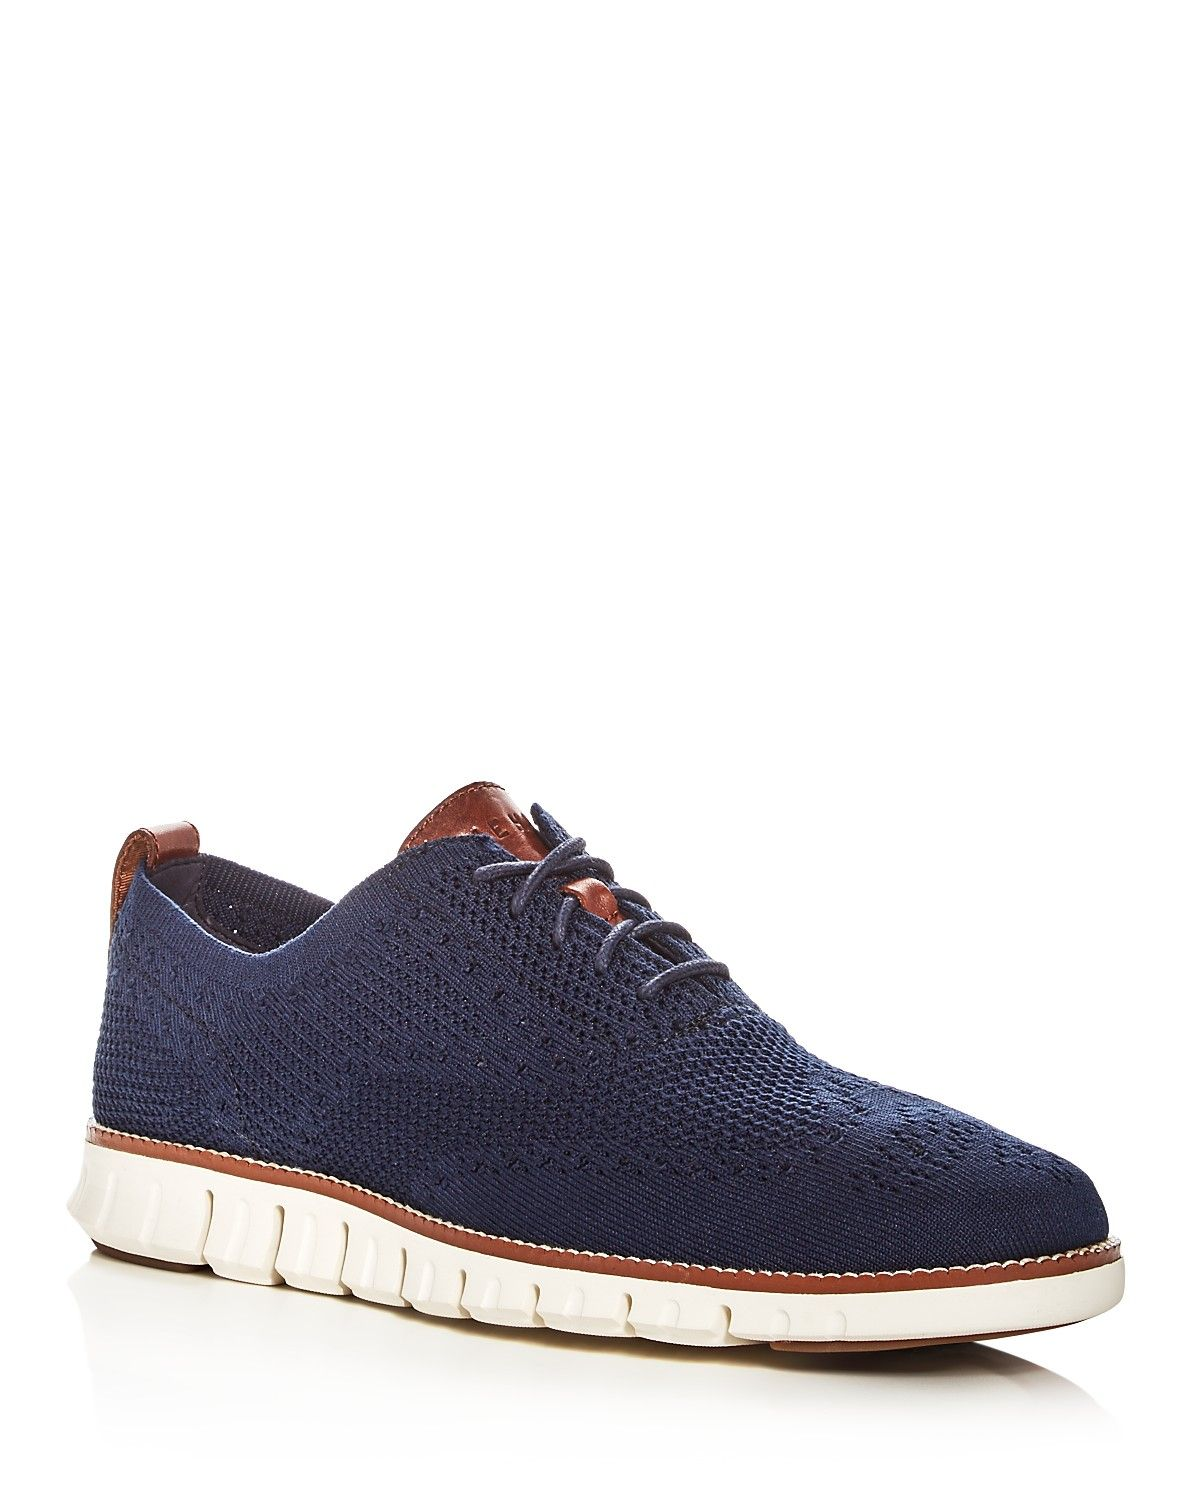 00279bd00a Men's ZeroGrand Wingtip Oxford with Stitchlite | Gameday Style for ...